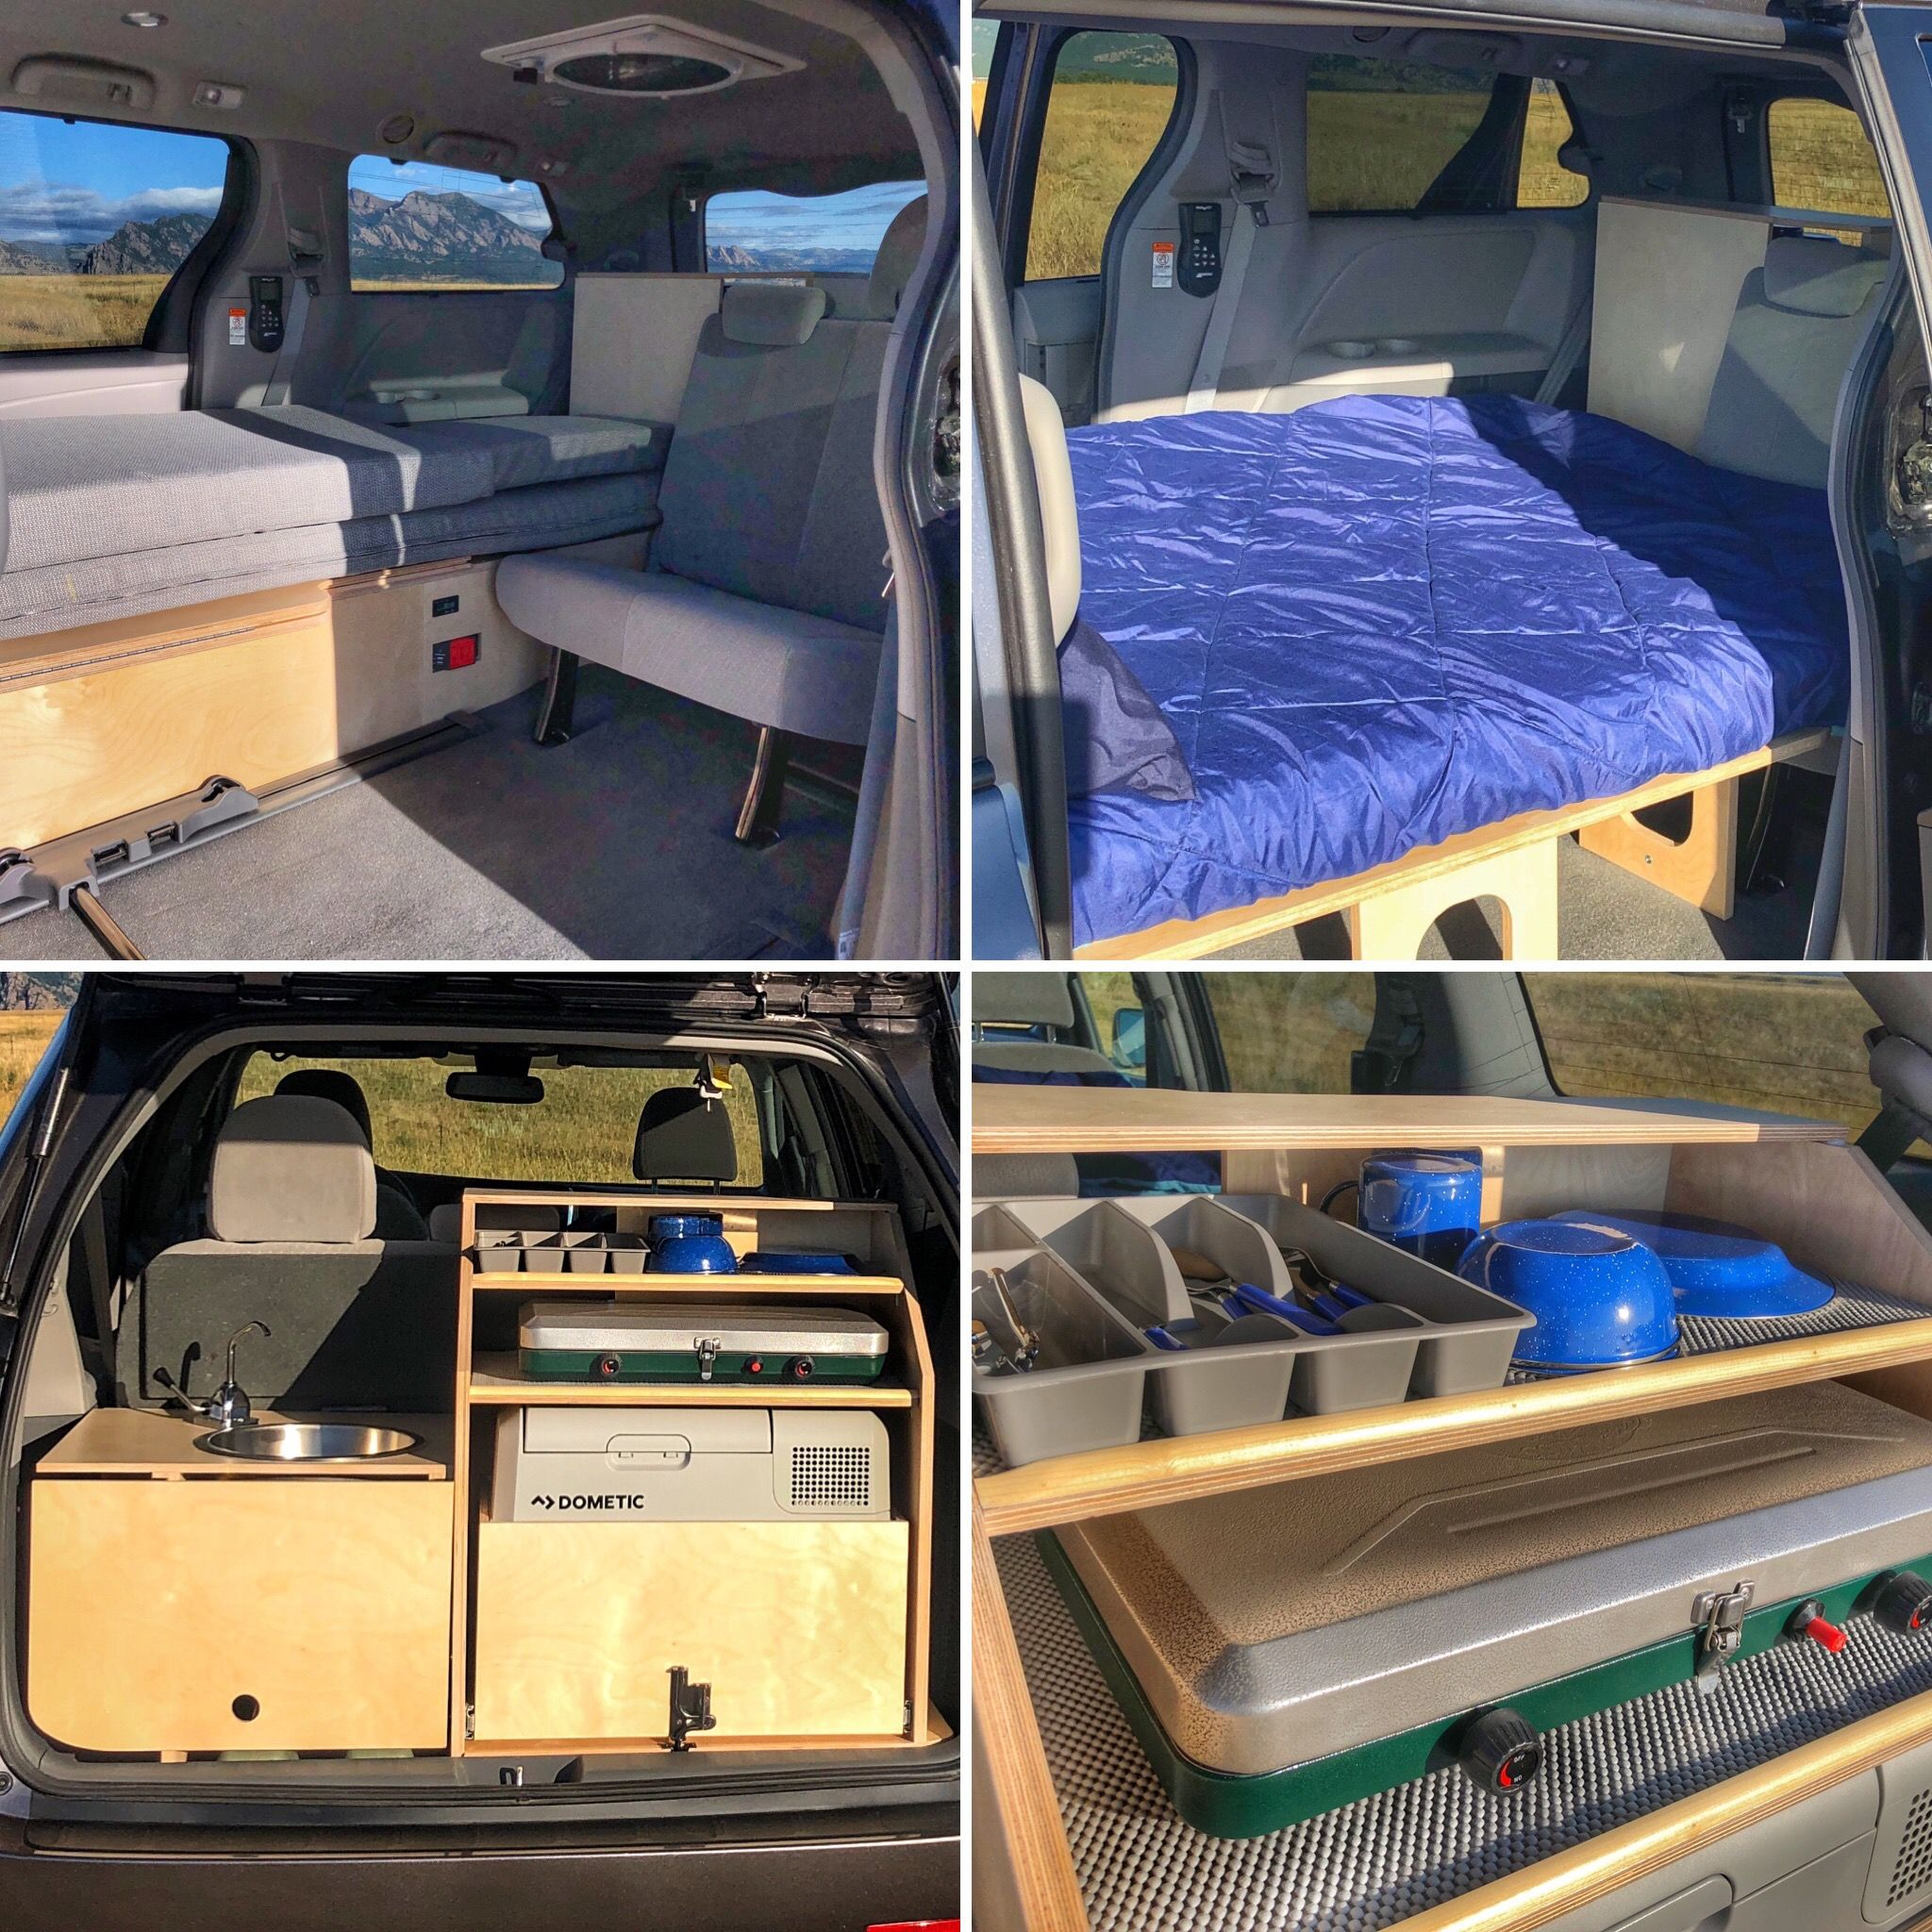 Toyota Sienna Standard Minivan Conversion With Refrigerator Fold Out Bed Mini Van Minivan Camper Conversion Camper Conversion